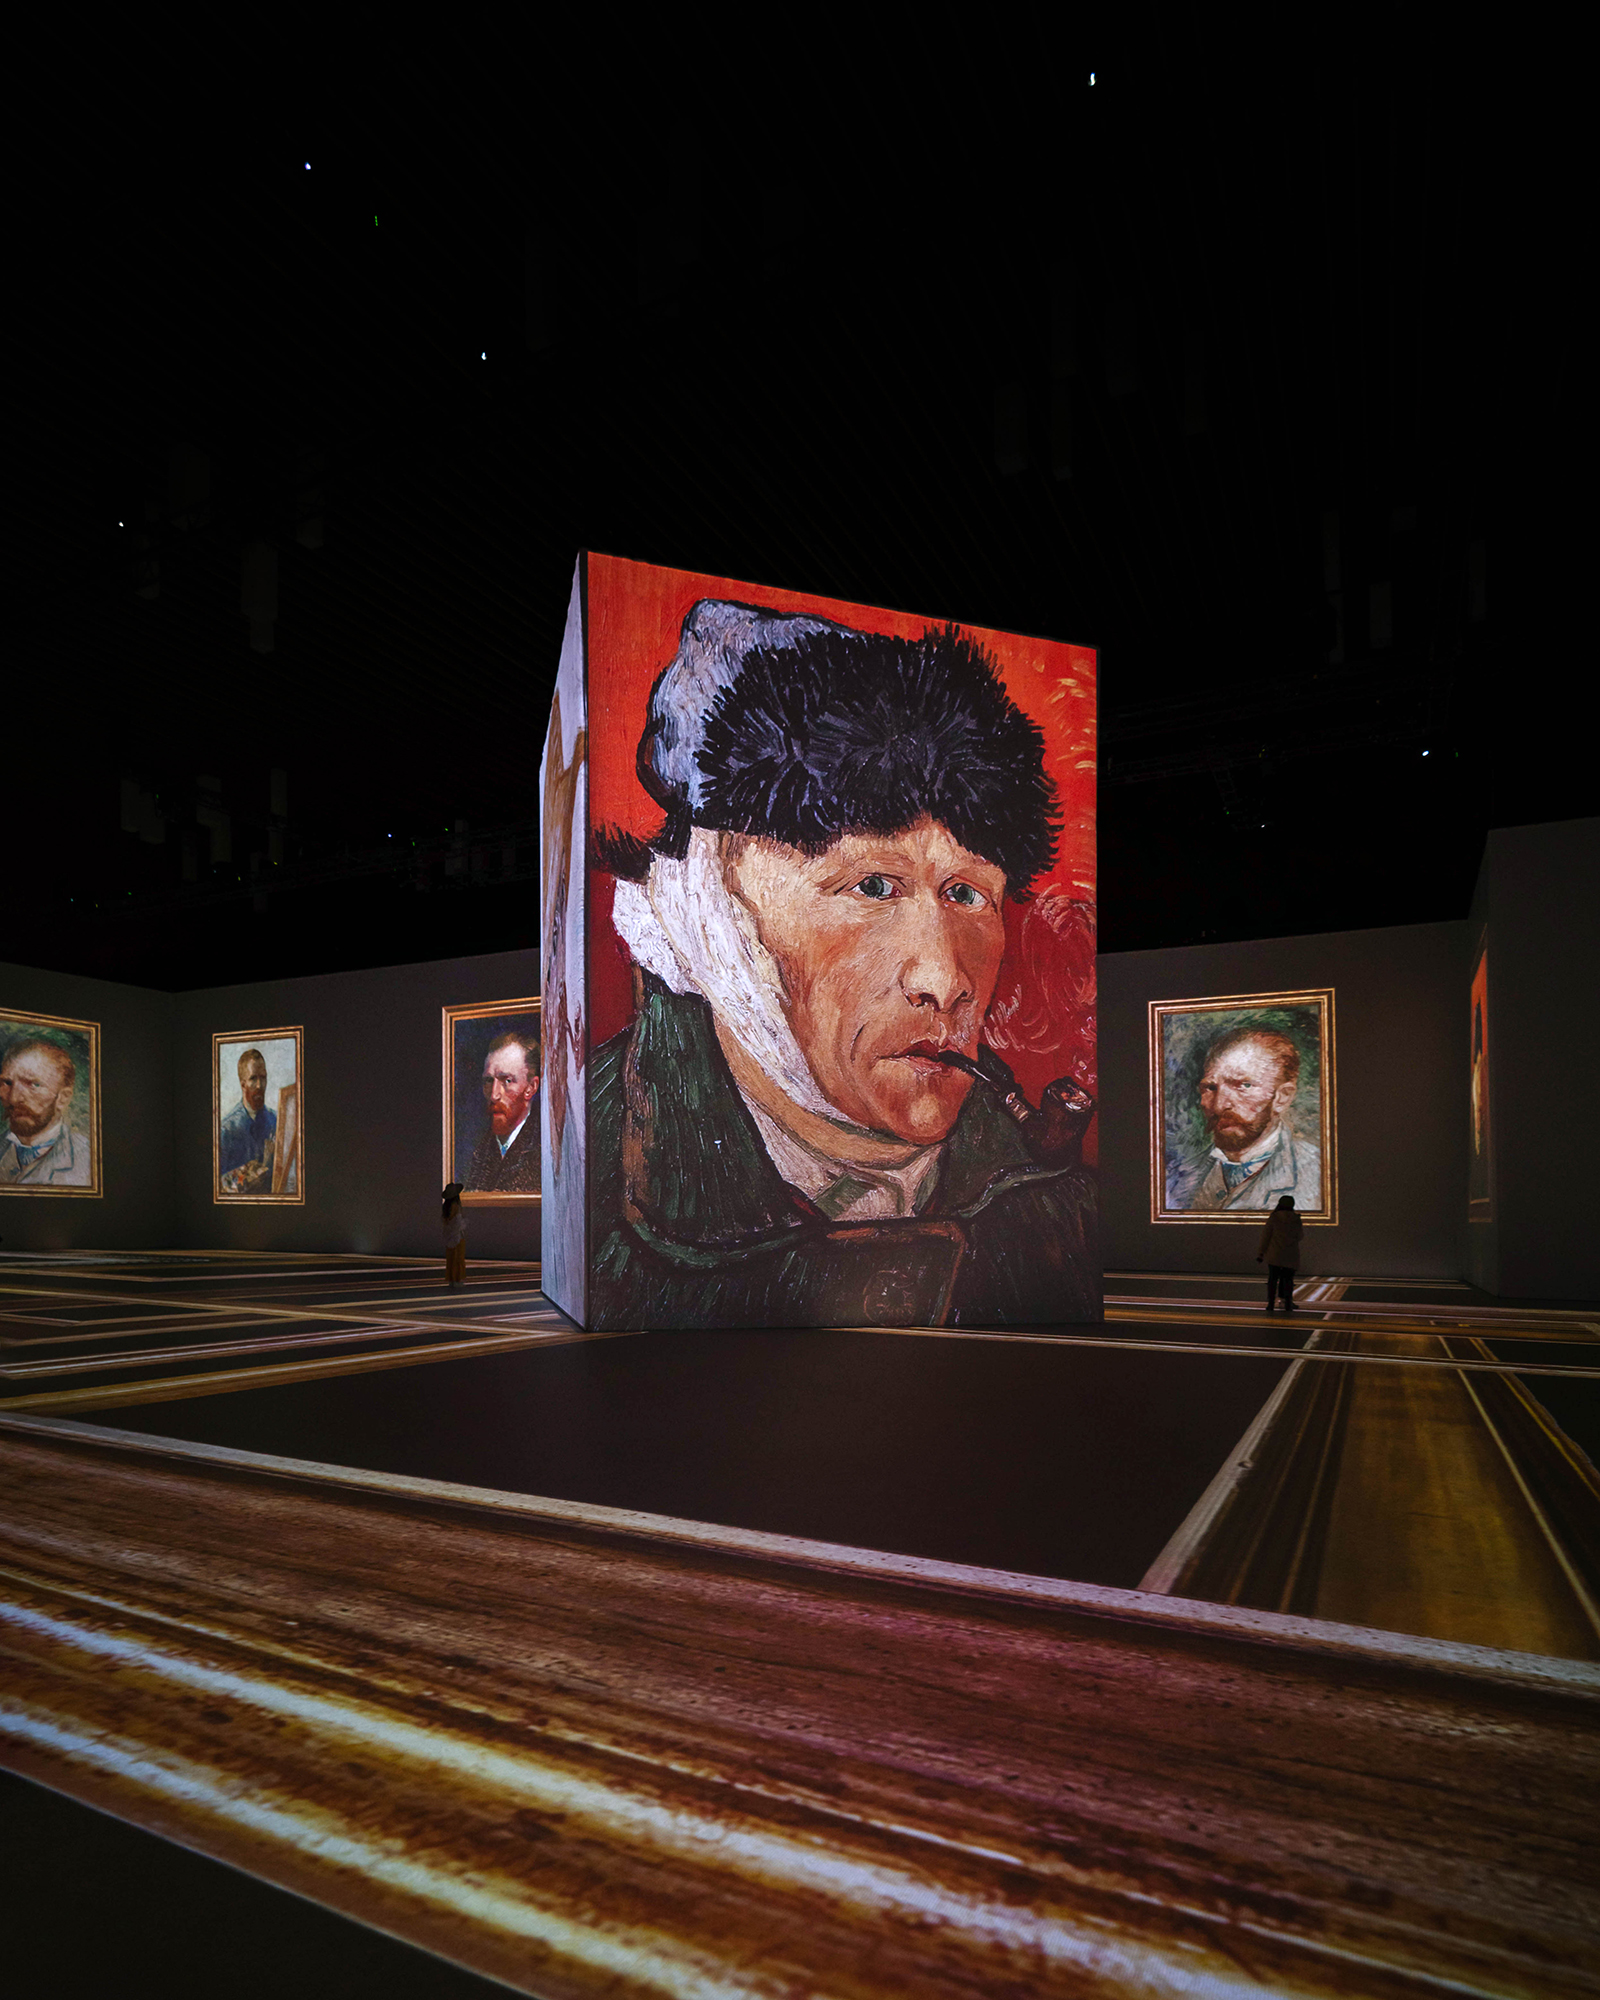 Imagine Van Gogh - The Immersive Exhibition; Vancouver's newest digital art exhibition.